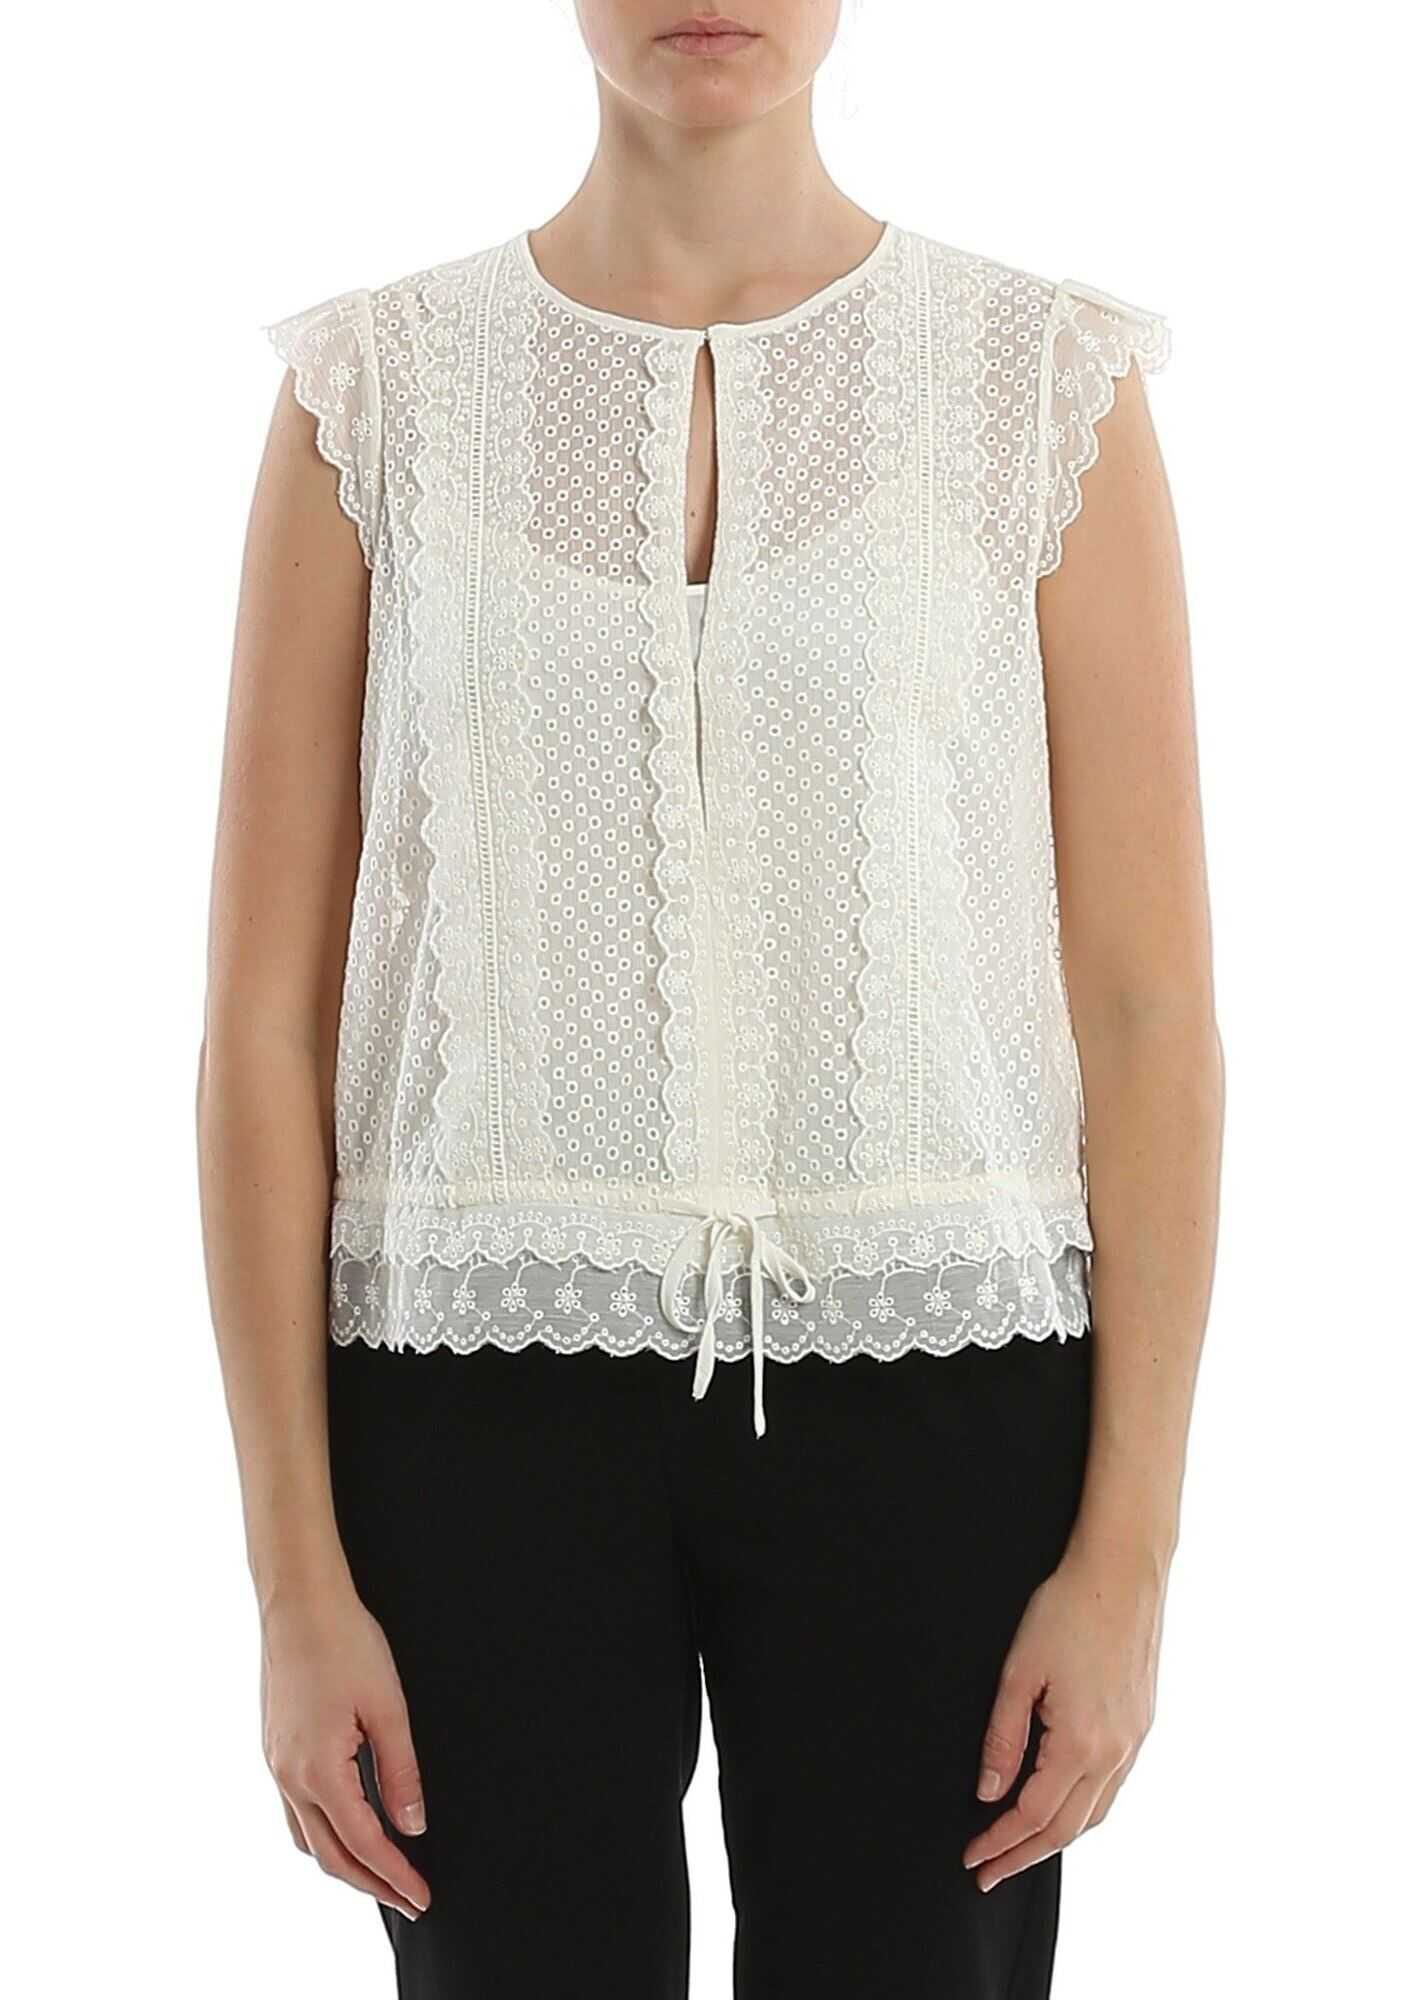 Twin-set Simona Barbieri Crepe And Broderie Anglaise Top In Color Cream Cream